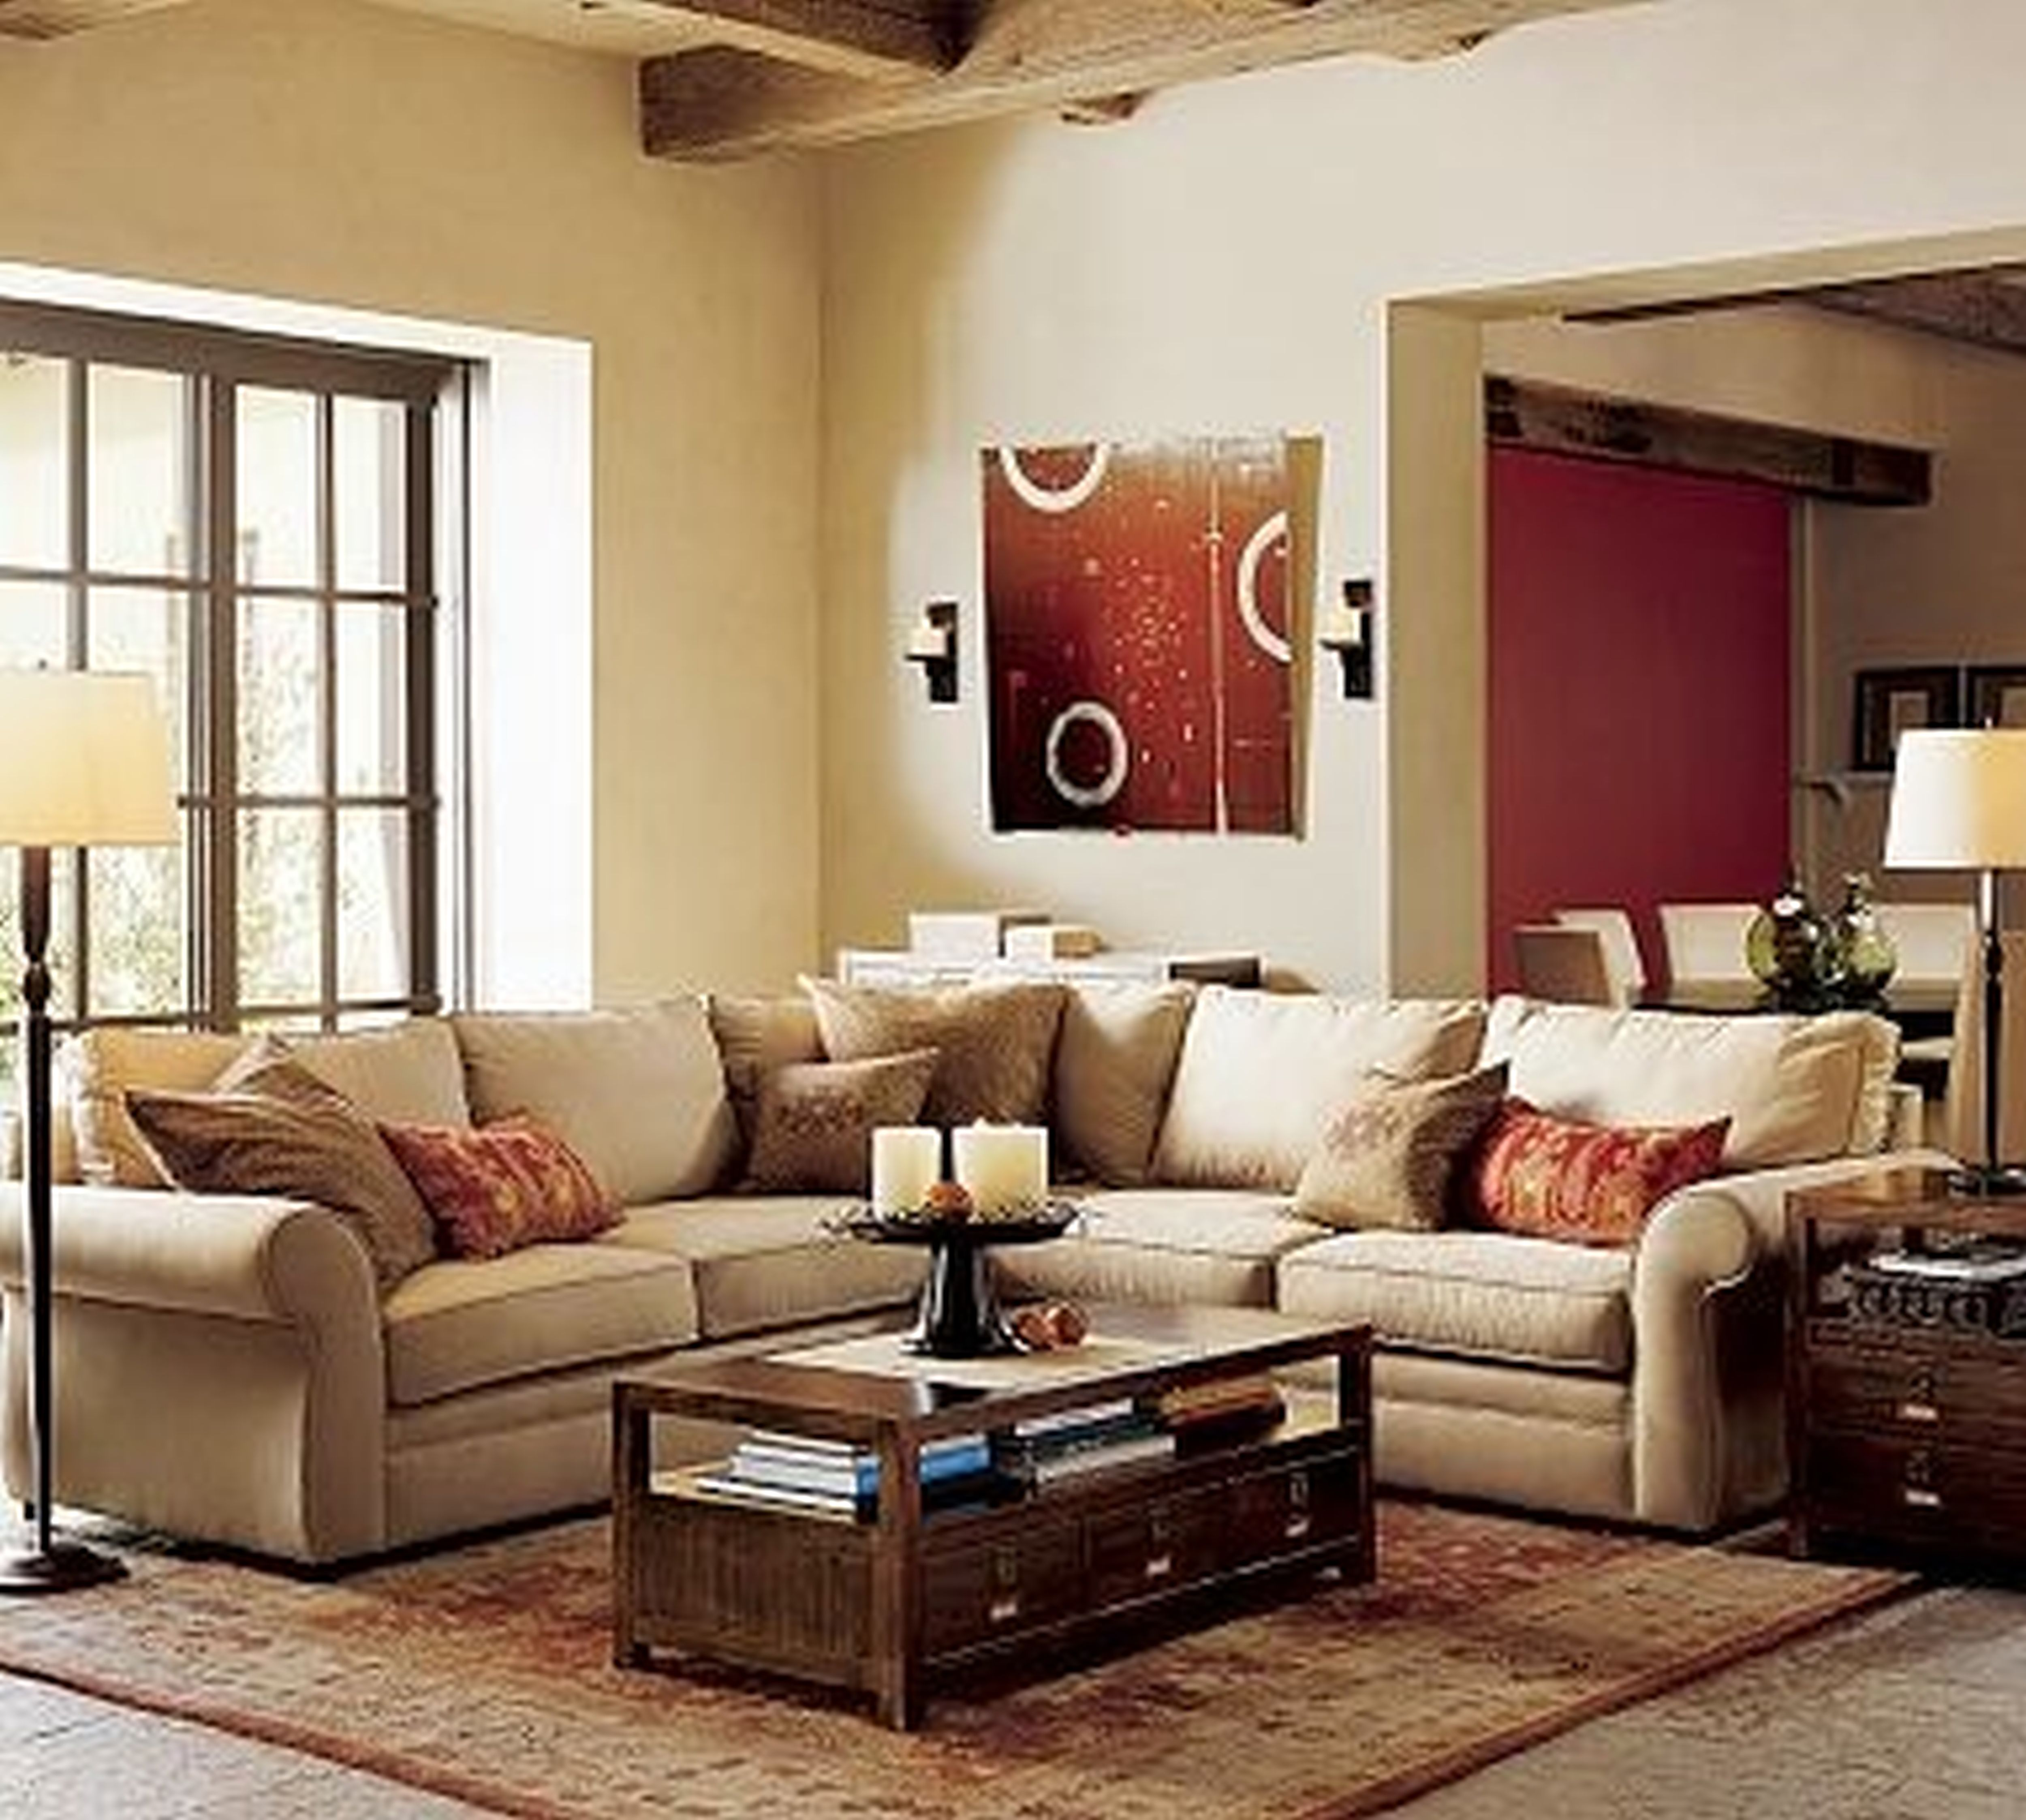 30 Cozy Home Decor Ideas For Your Home The Wow Style - Decorating Ideas For Living Rooms